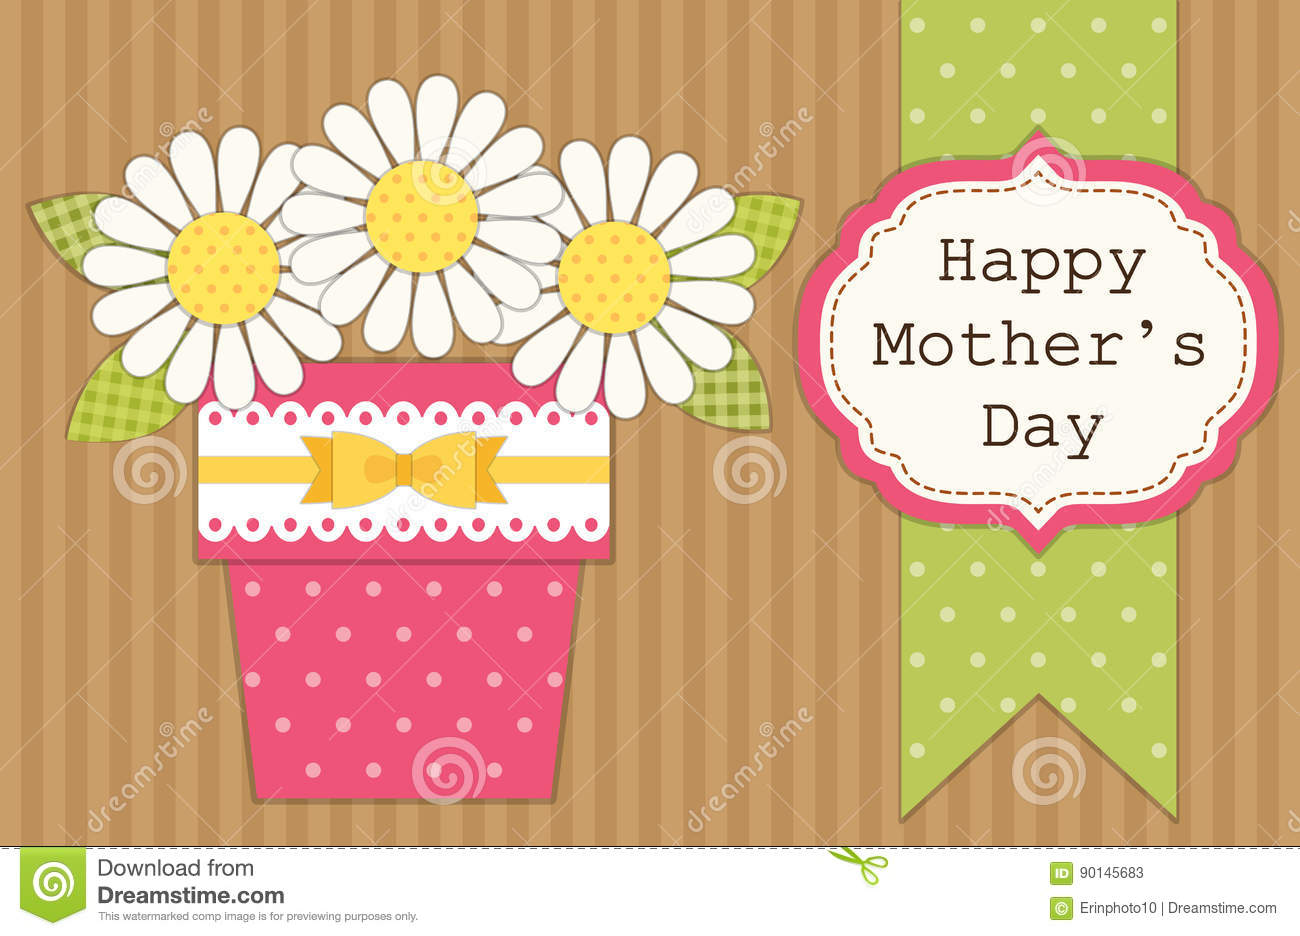 Cute Retro Card For Mothers Day With Flowers In A Pot Stock Vector